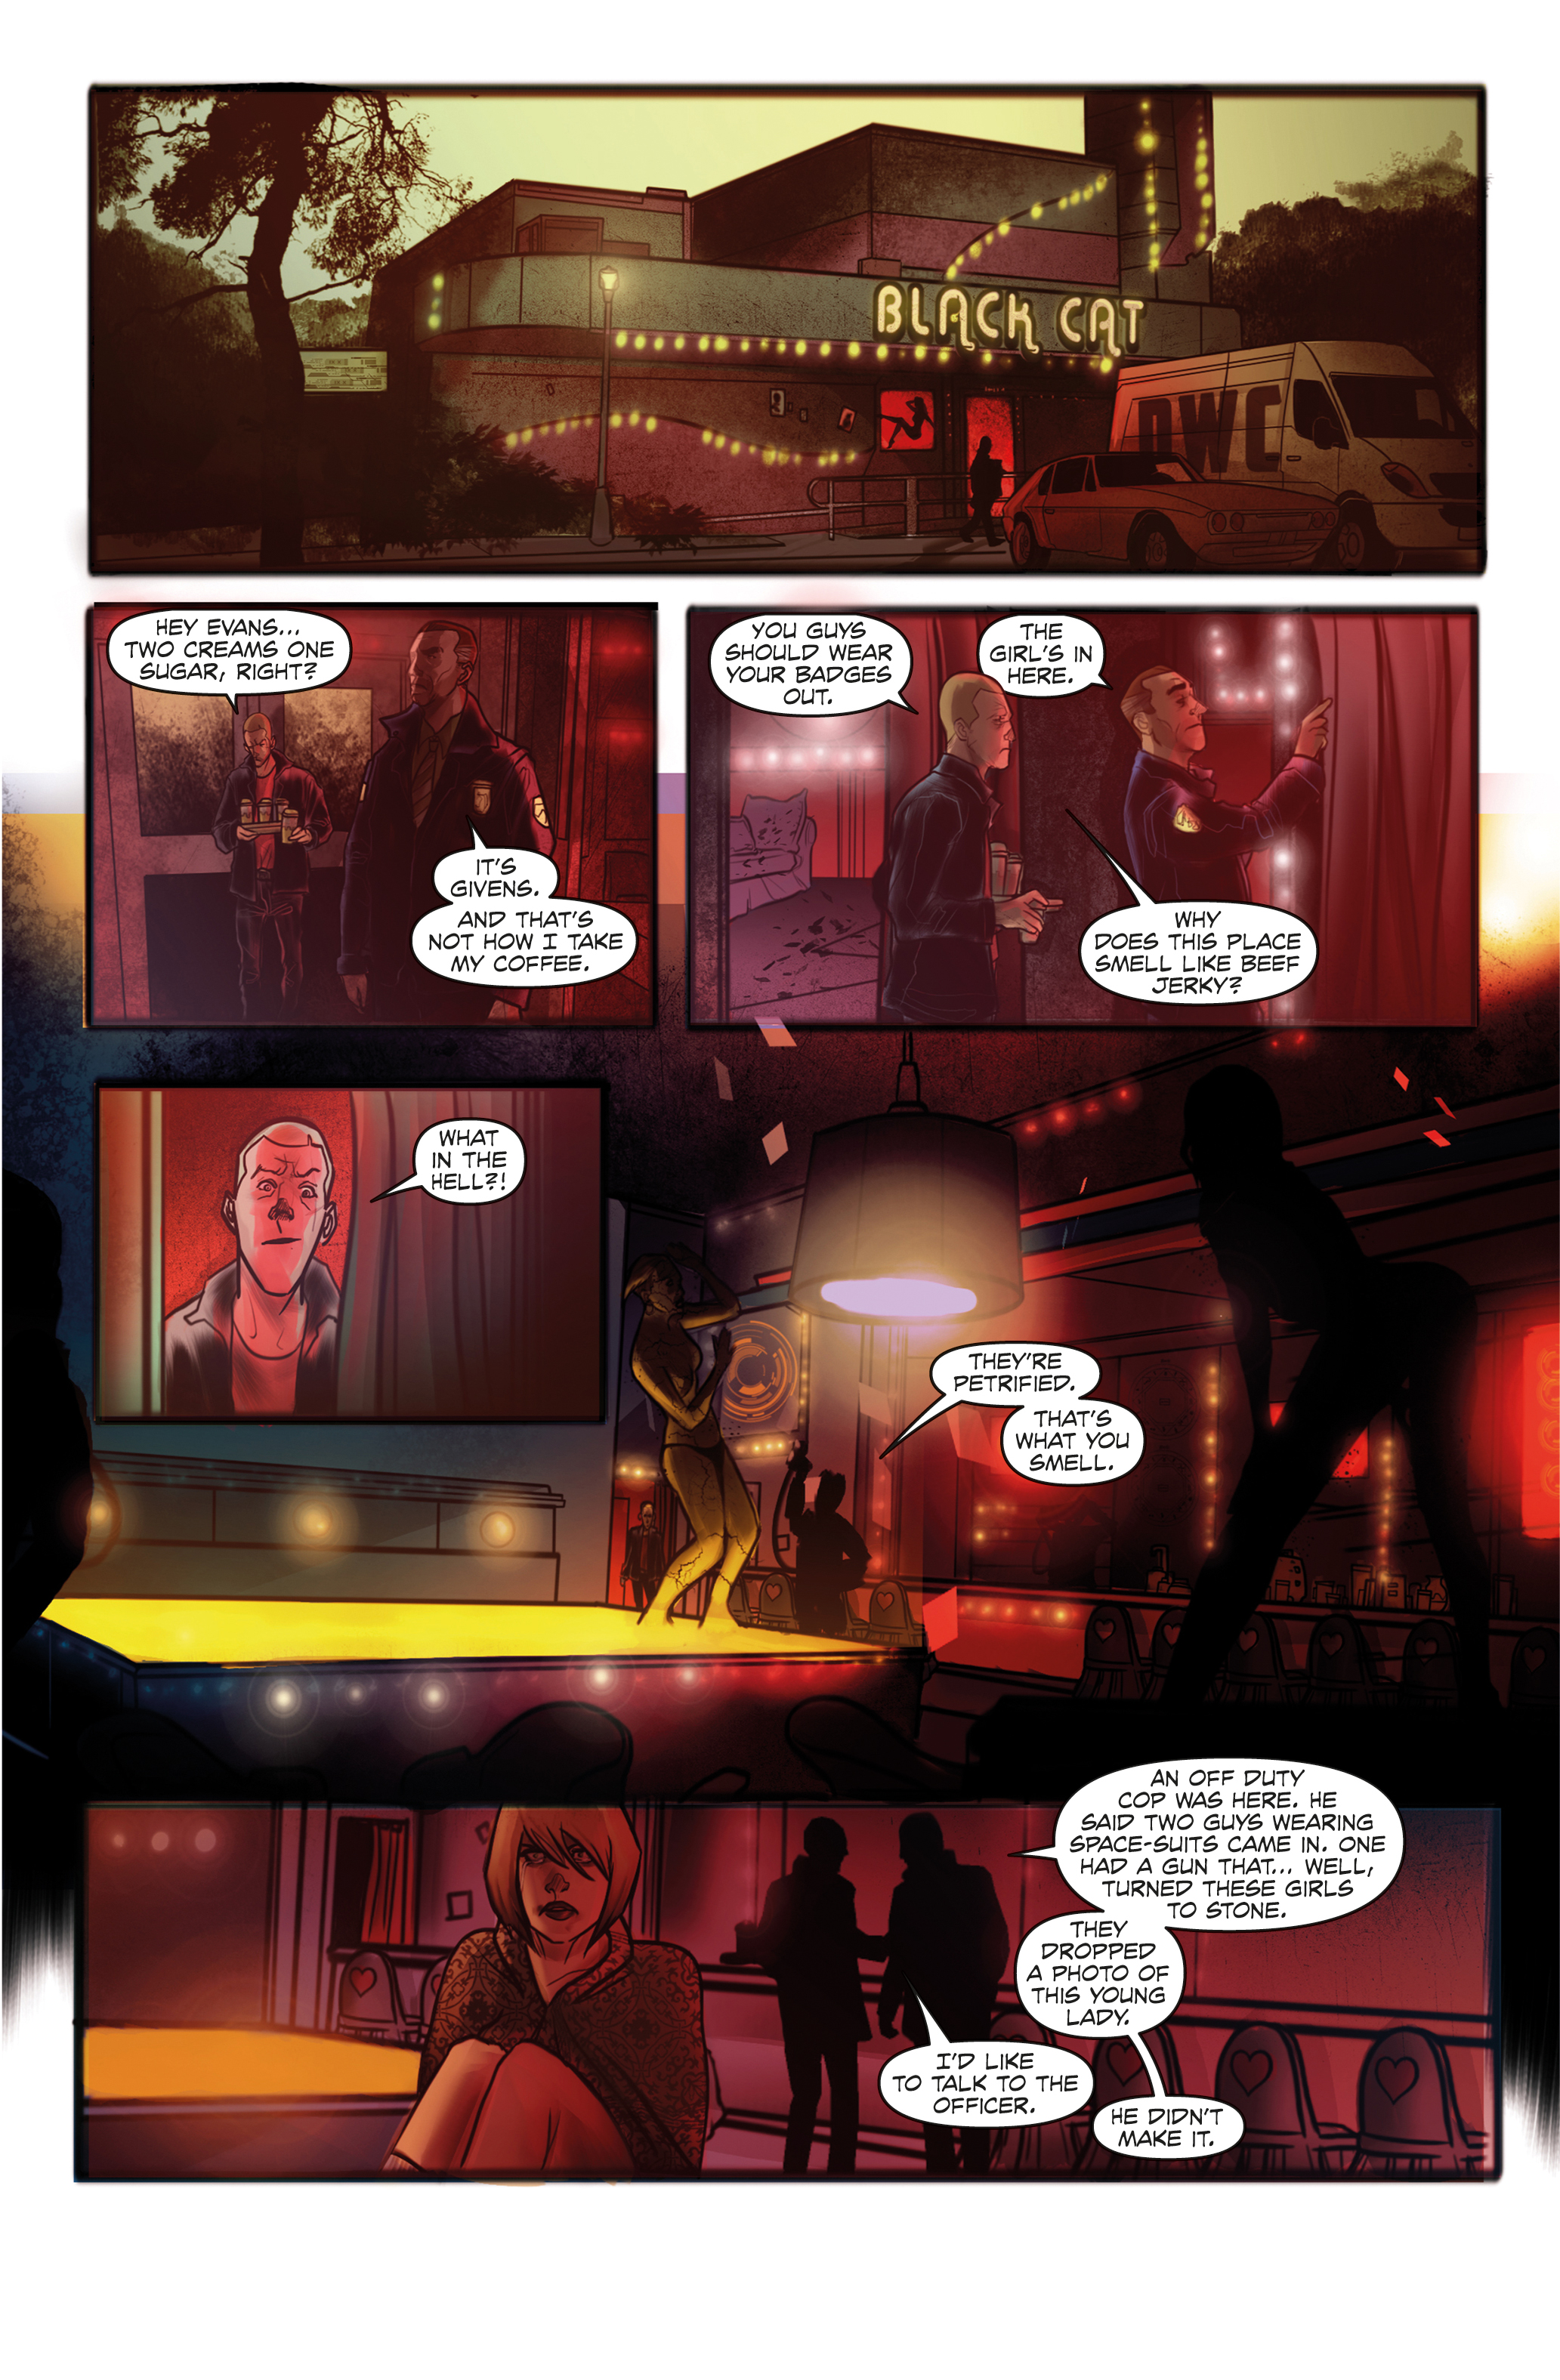 Shelter Division #1 Page 14-01.jpg